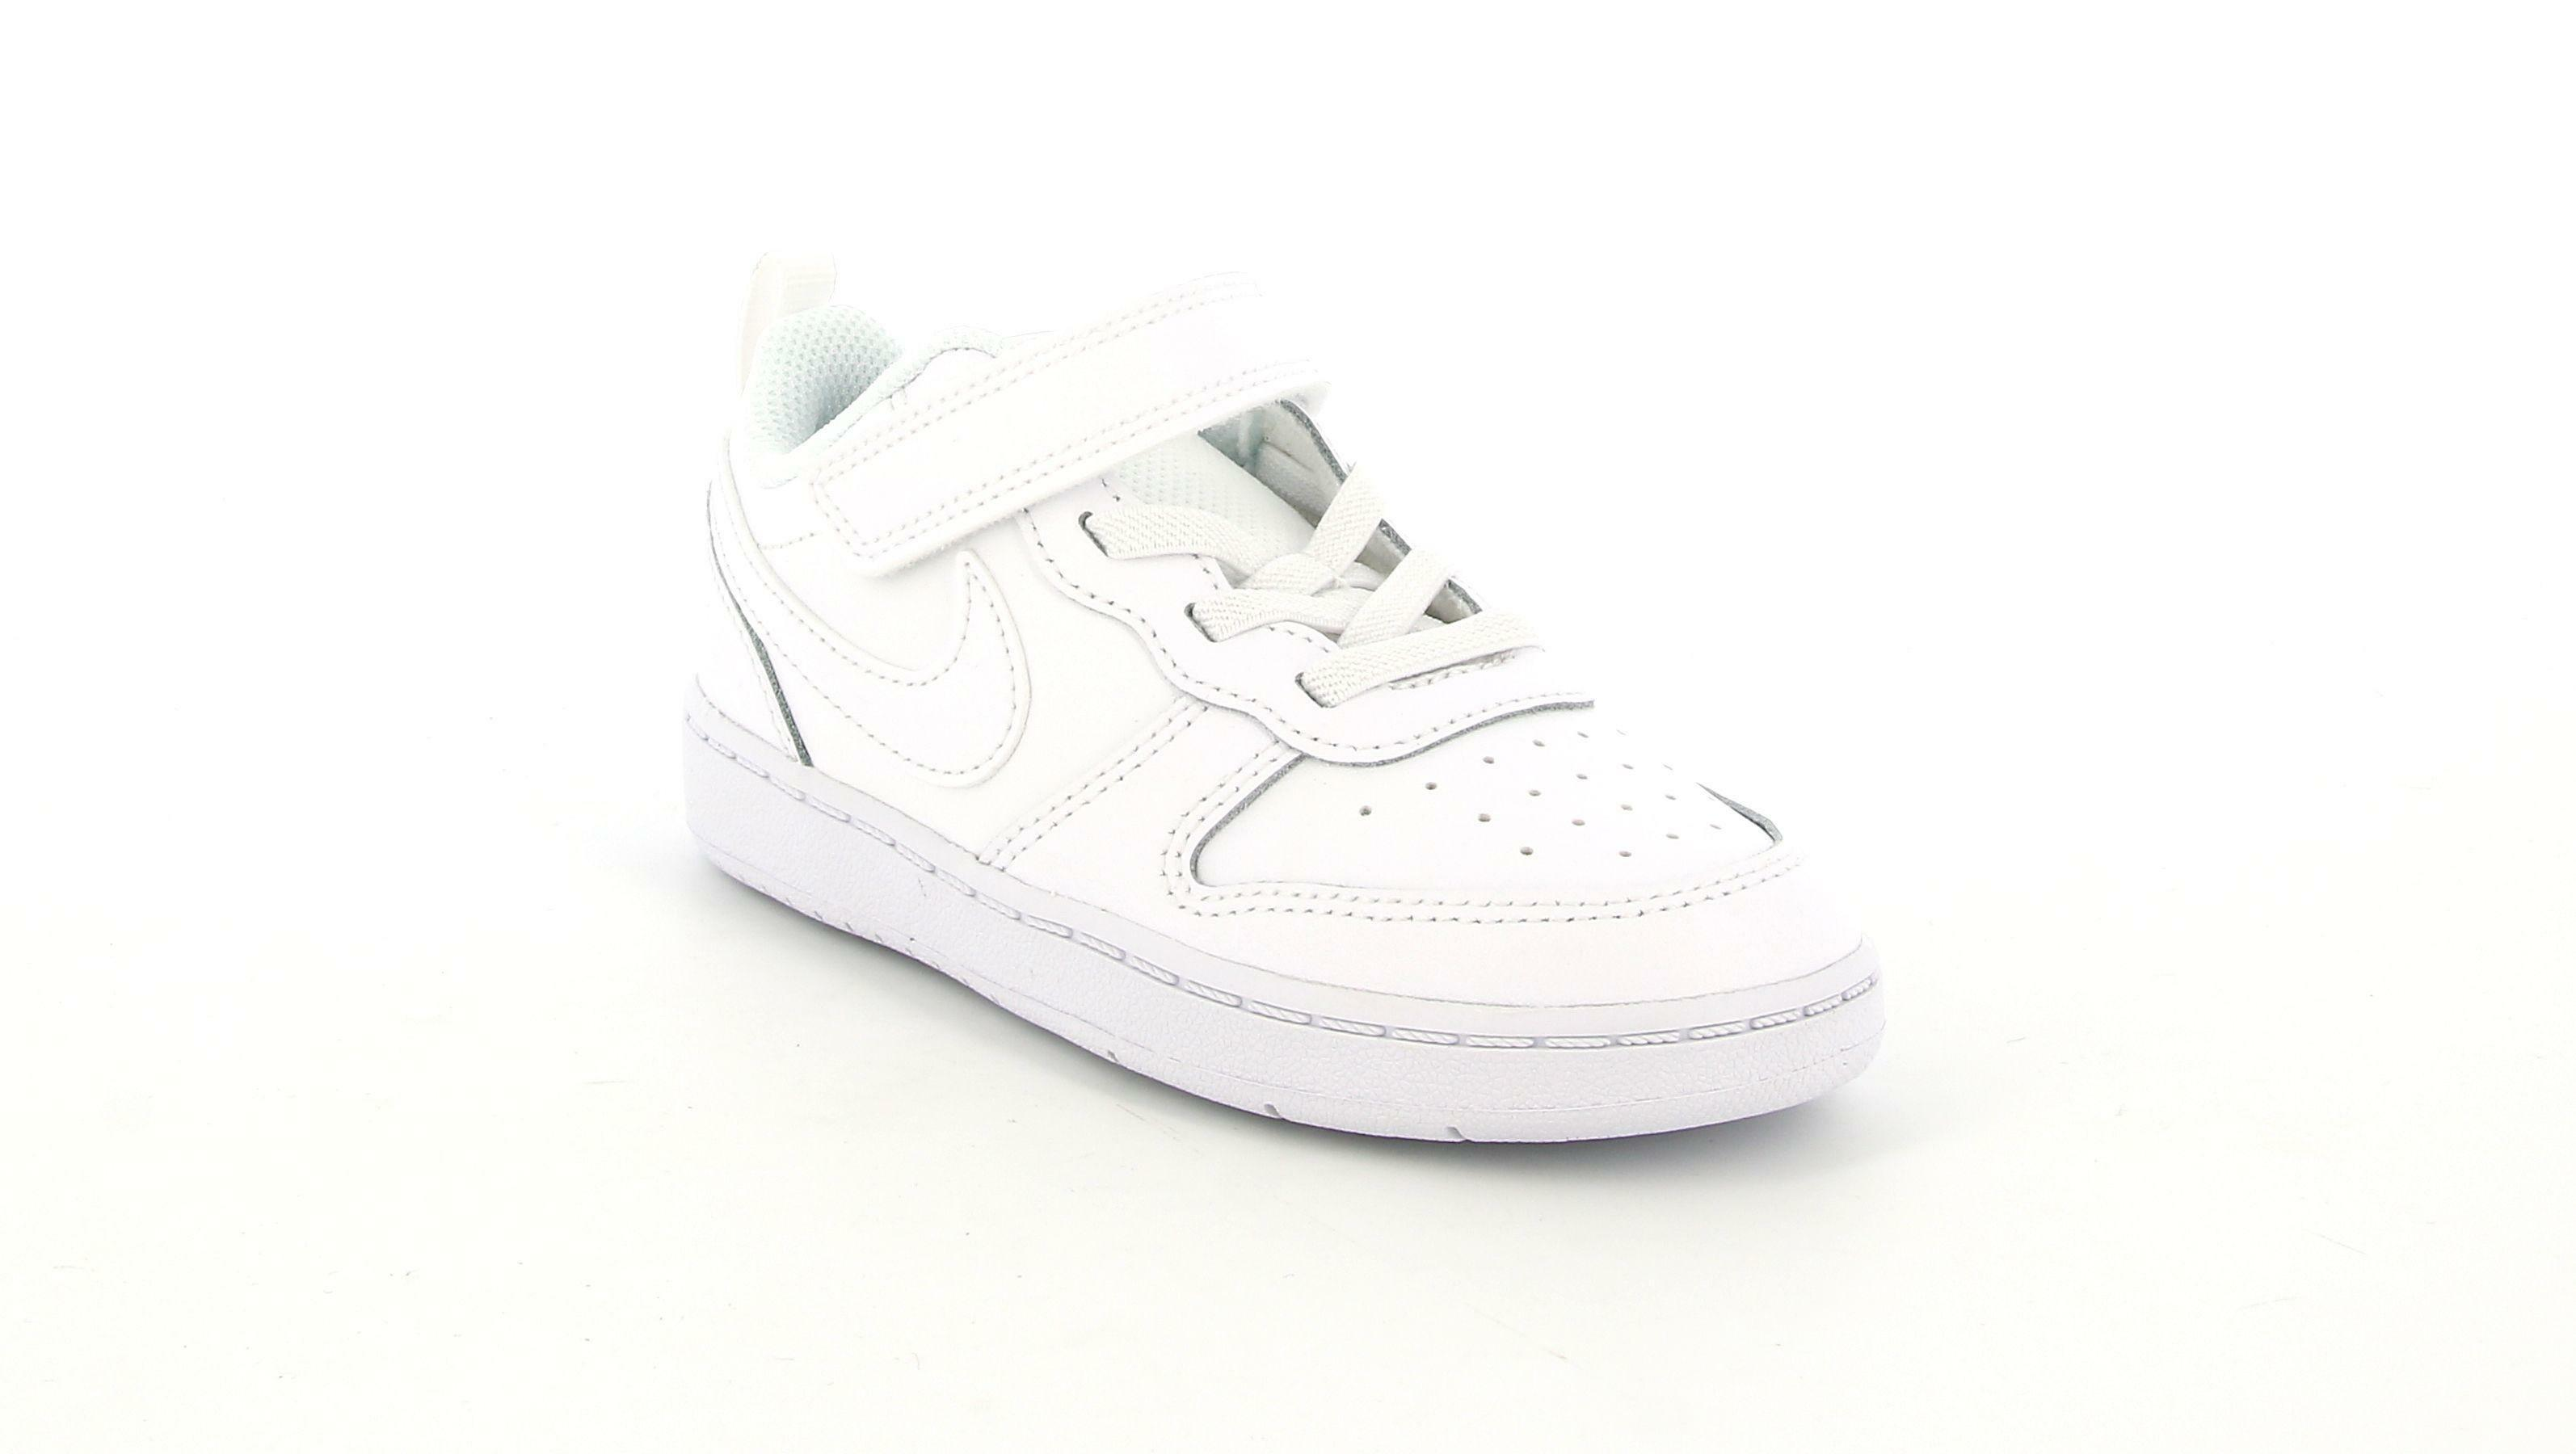 nike nike court borough low 2 (td) sneaker babinom bq5453 001 bianco